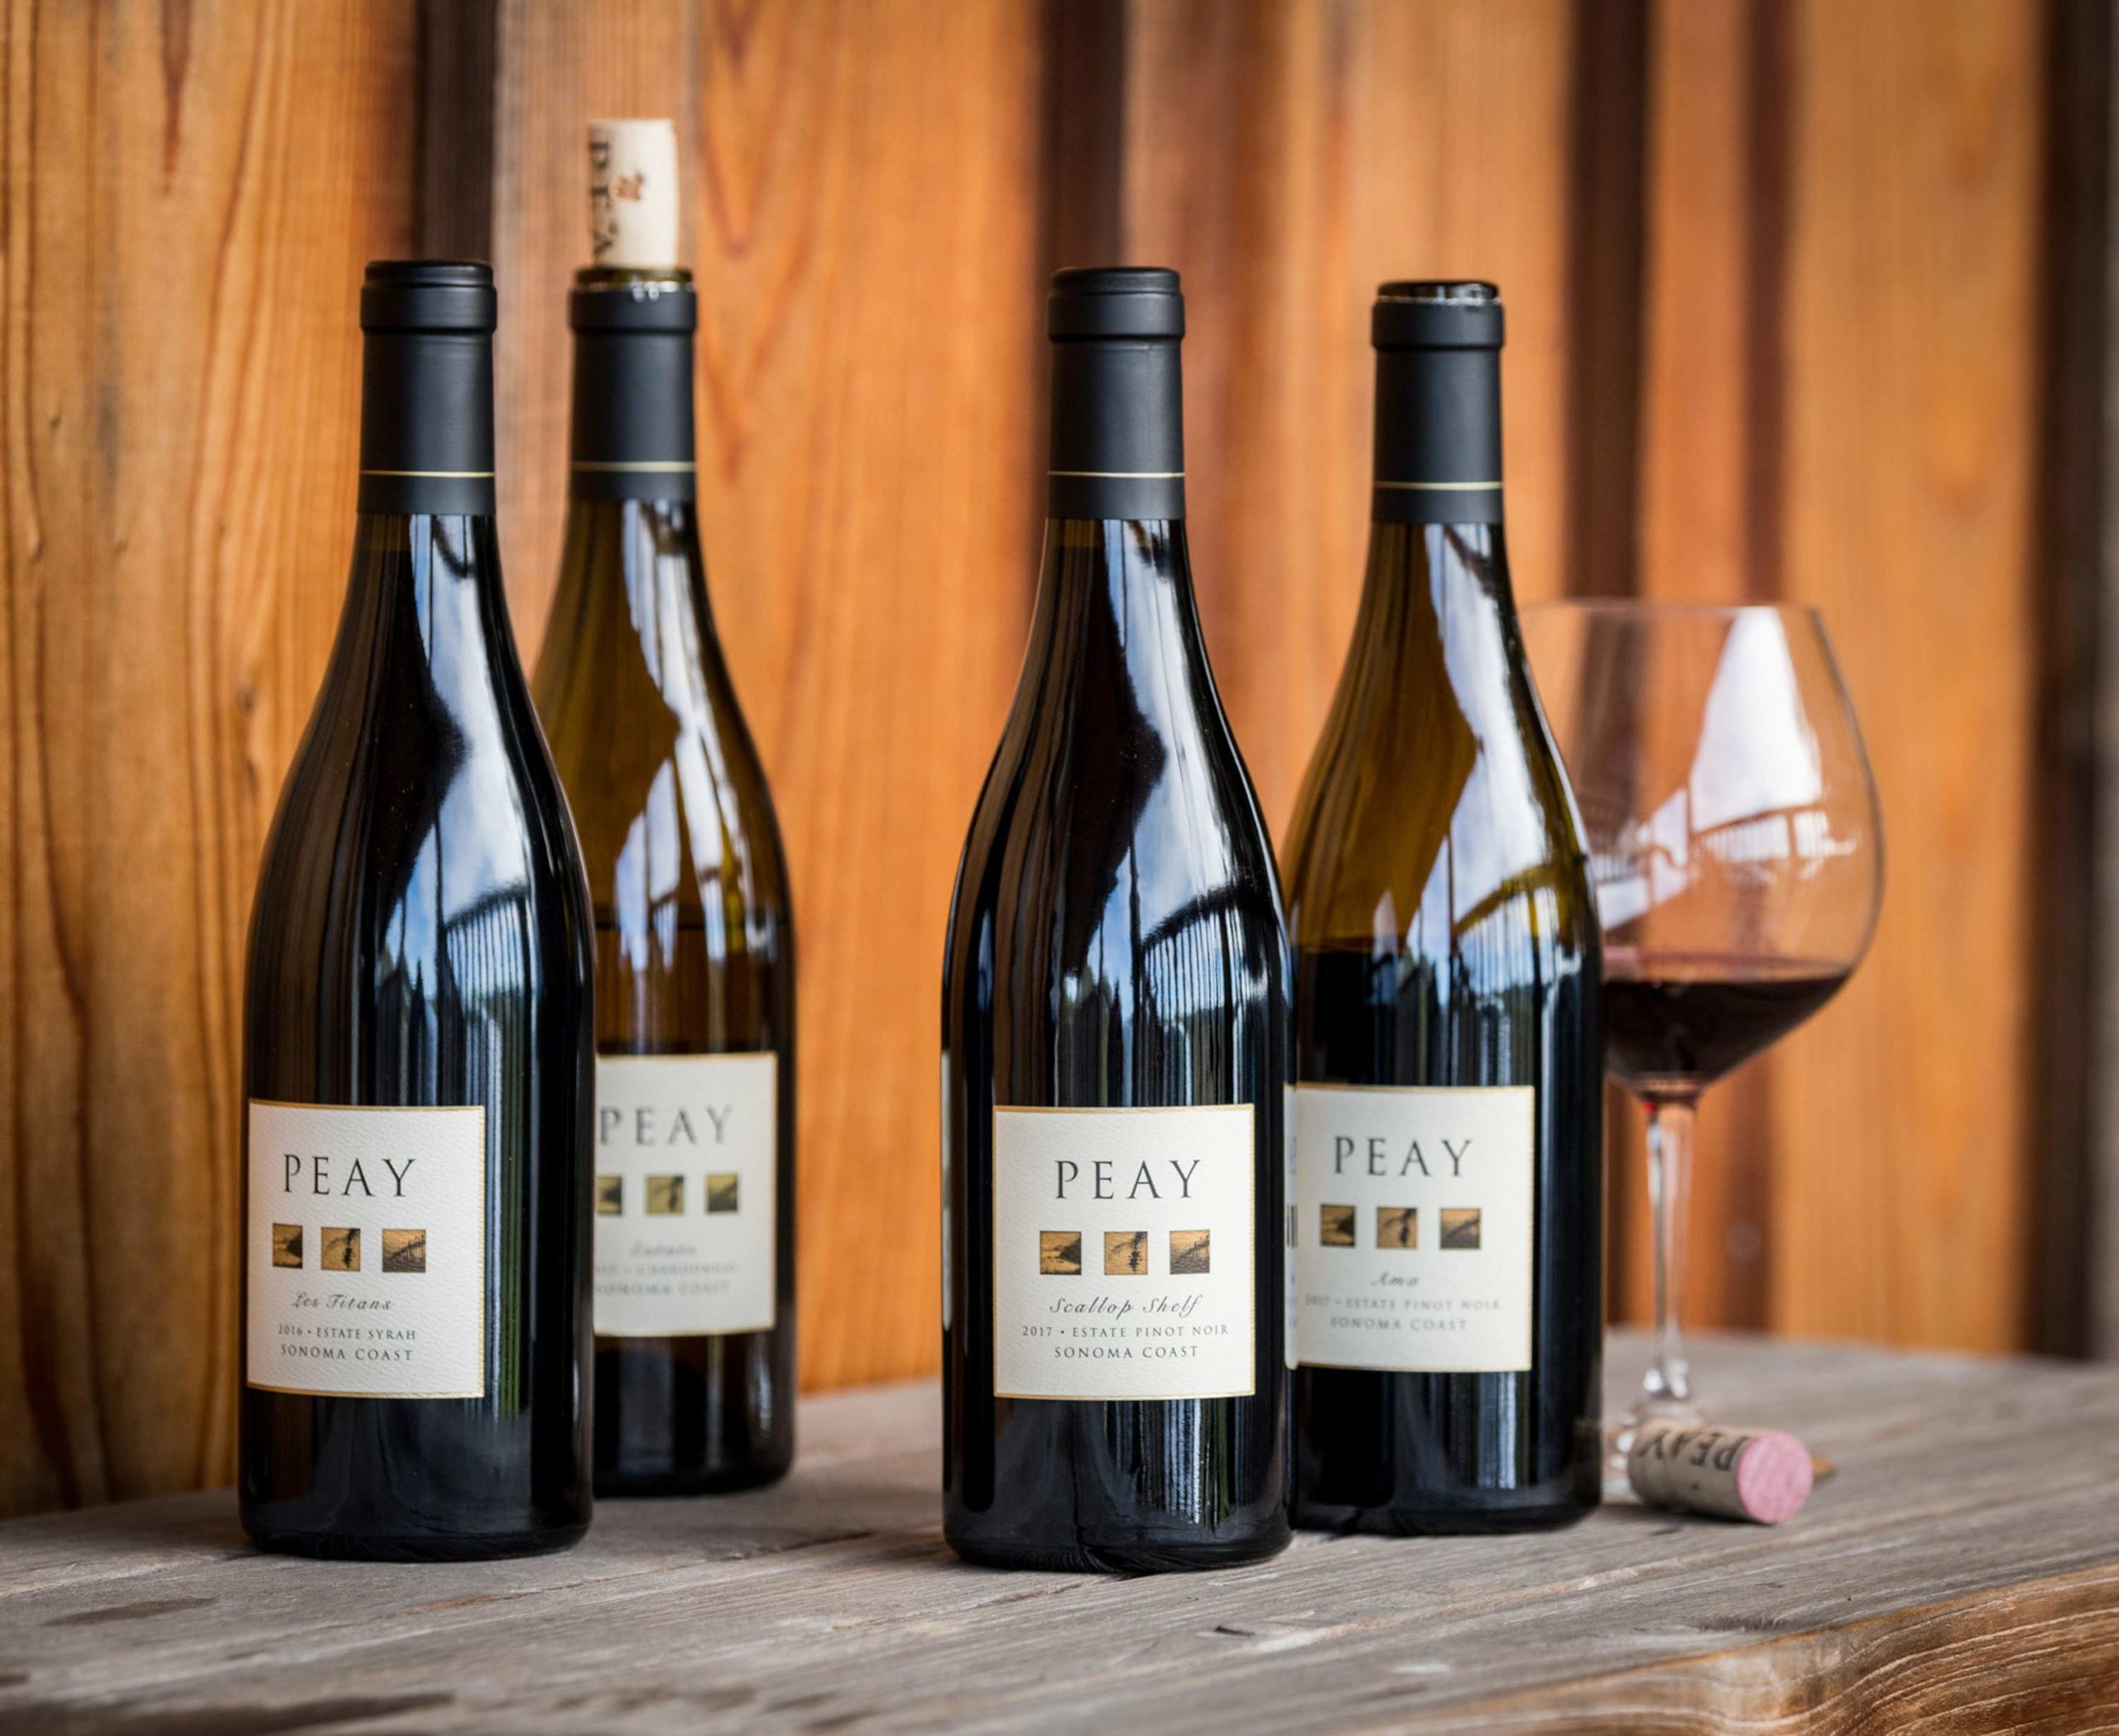 Featured image for Article: 2011 Peay Vineyards Ama Estate Pinot noir, Sonoma Coast